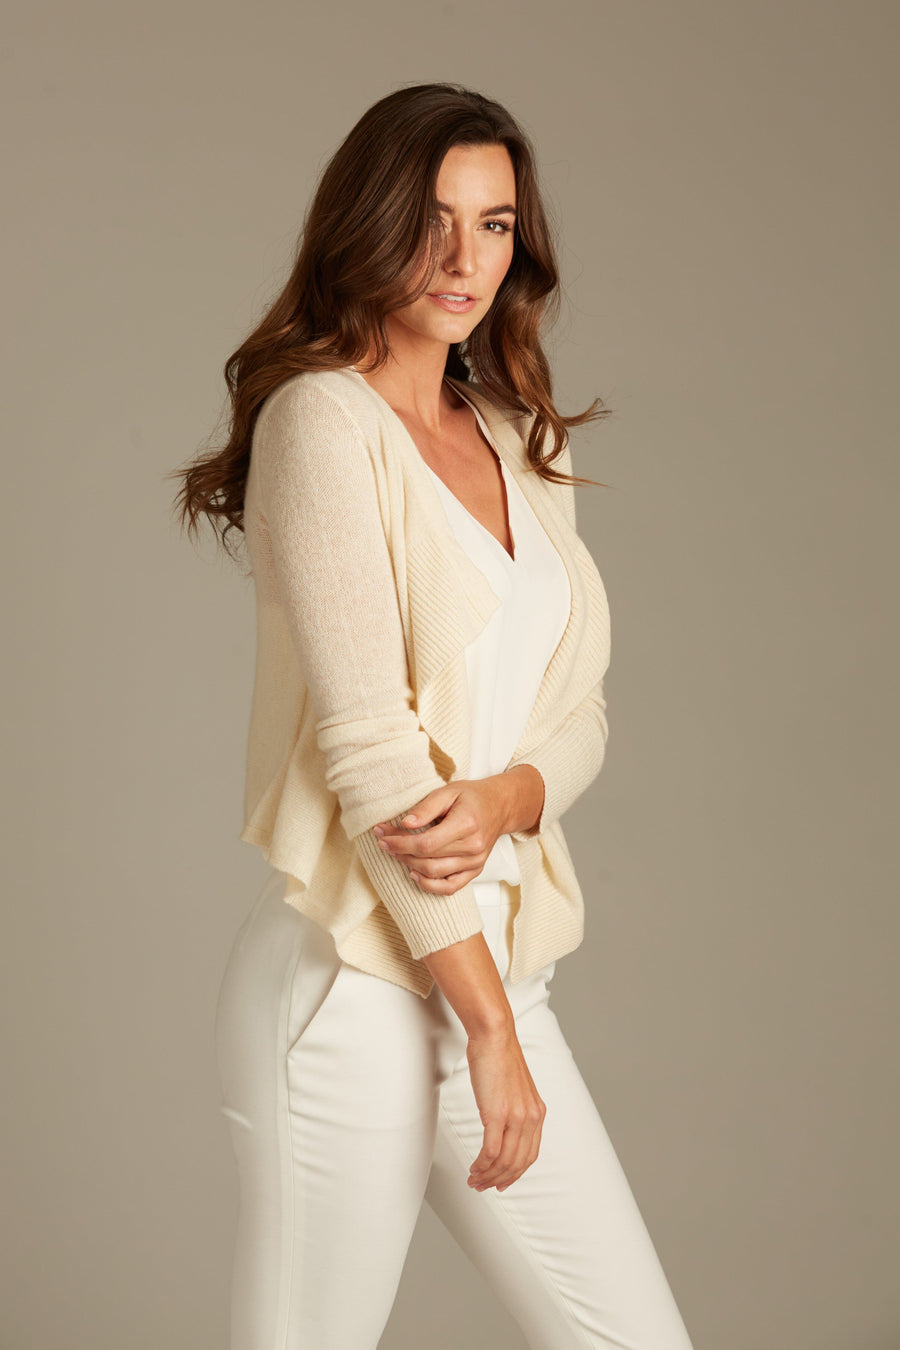 pine cashmere cami women's 100% pure organic cashmere open draped cardigan in cream white